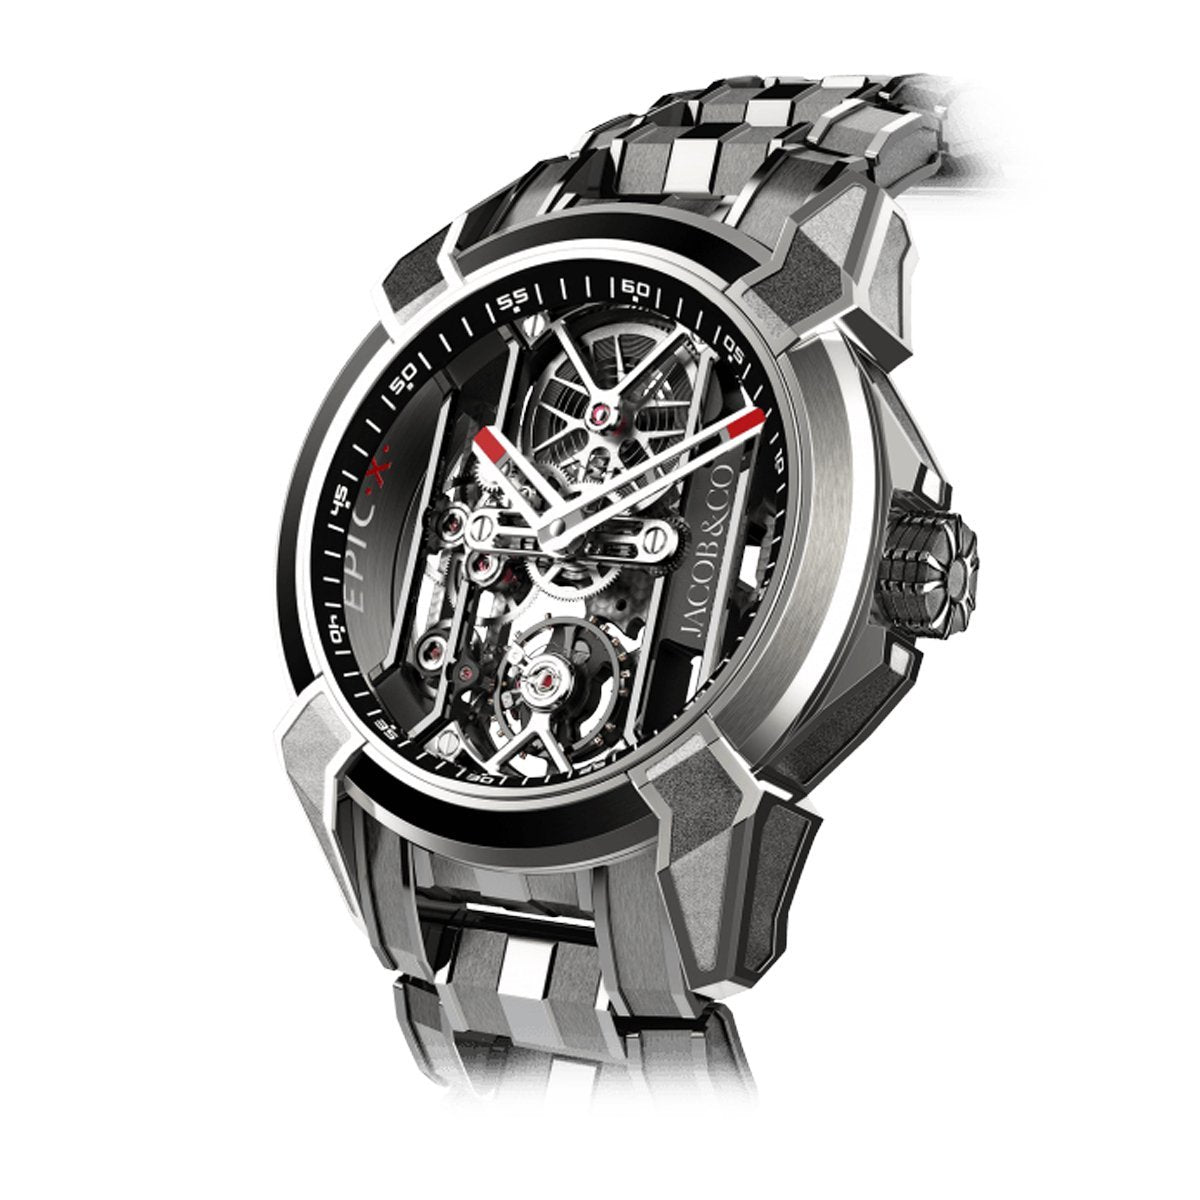 Jacob & Co. Epic X Skeleton Titanium Bracelet Black - Watches & Crystals